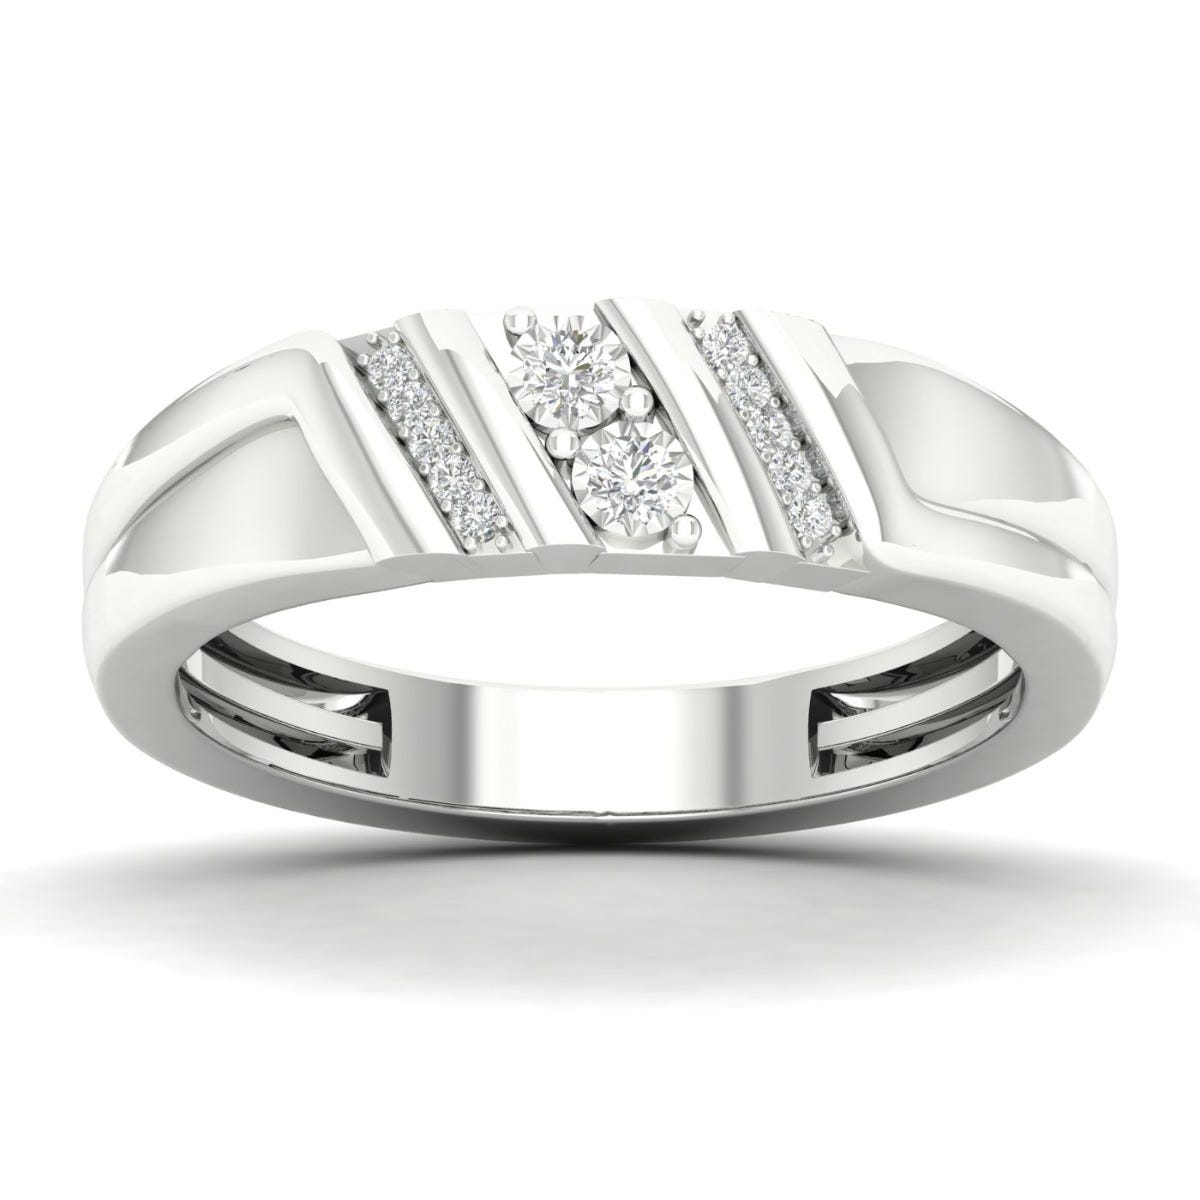 Gents Diagonal Striped Diamond Band in 10k White Gold